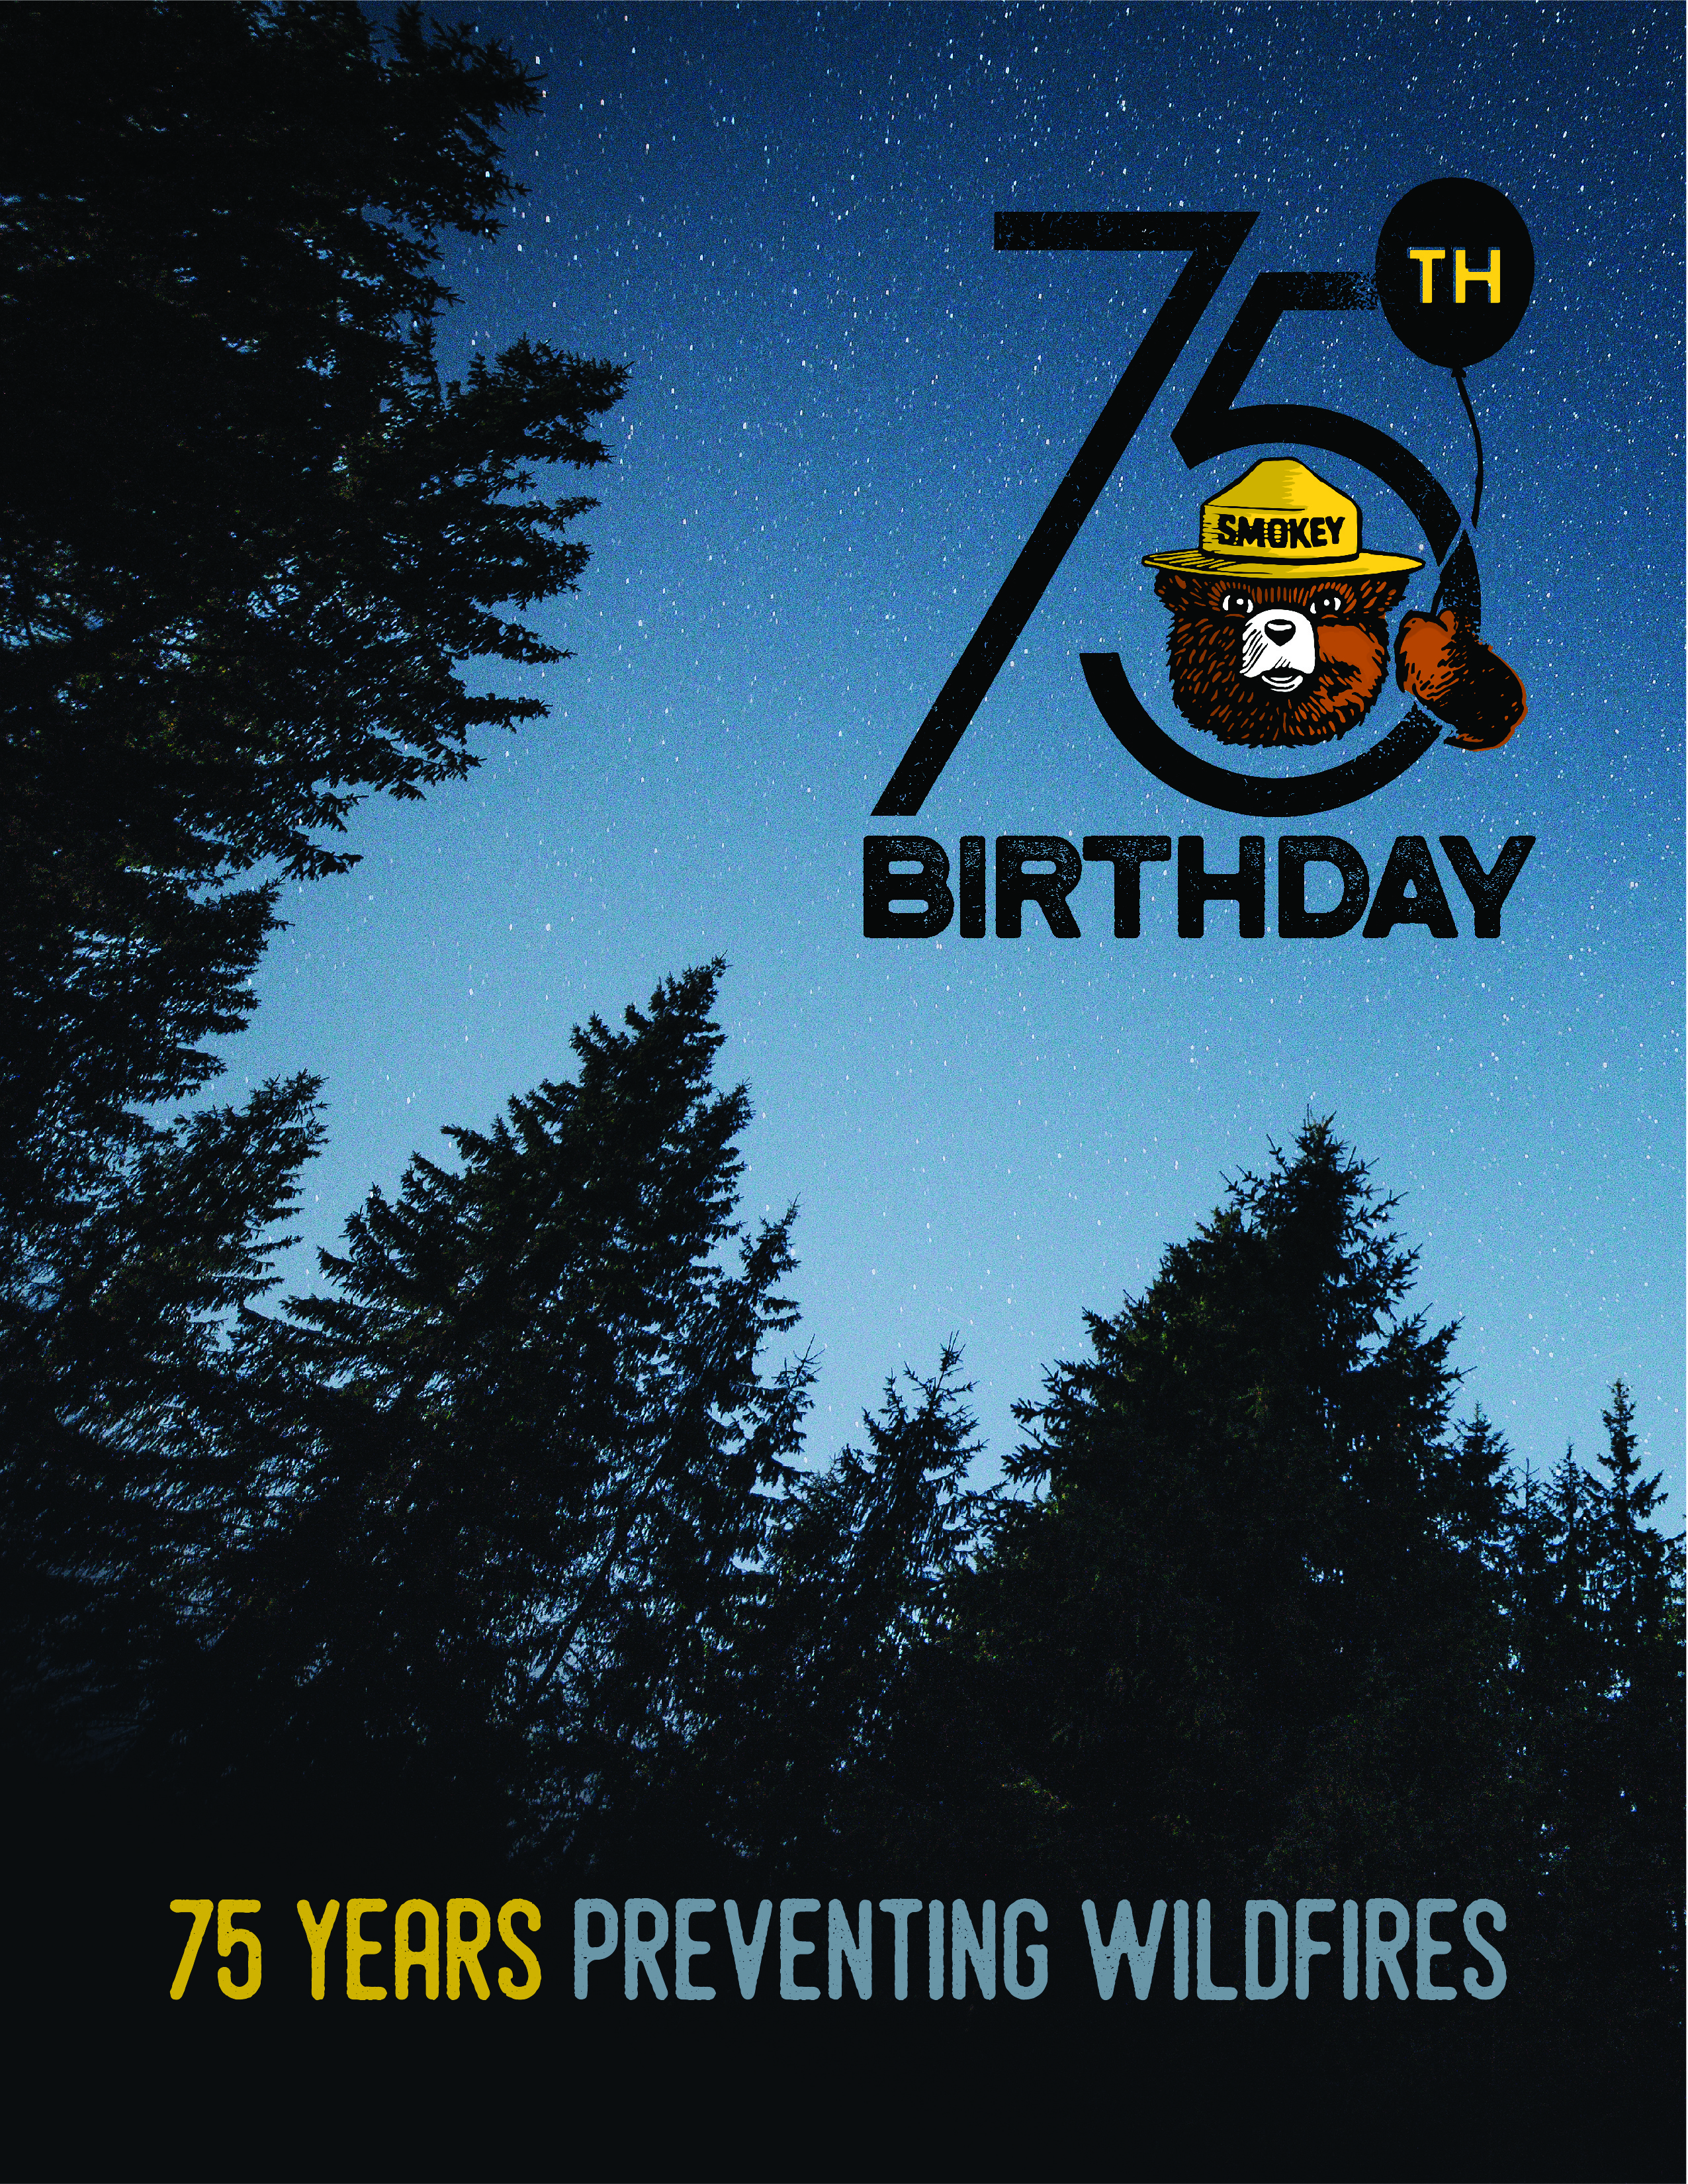 75th Smokey's Birthday, 75 years of preventing wildfires.